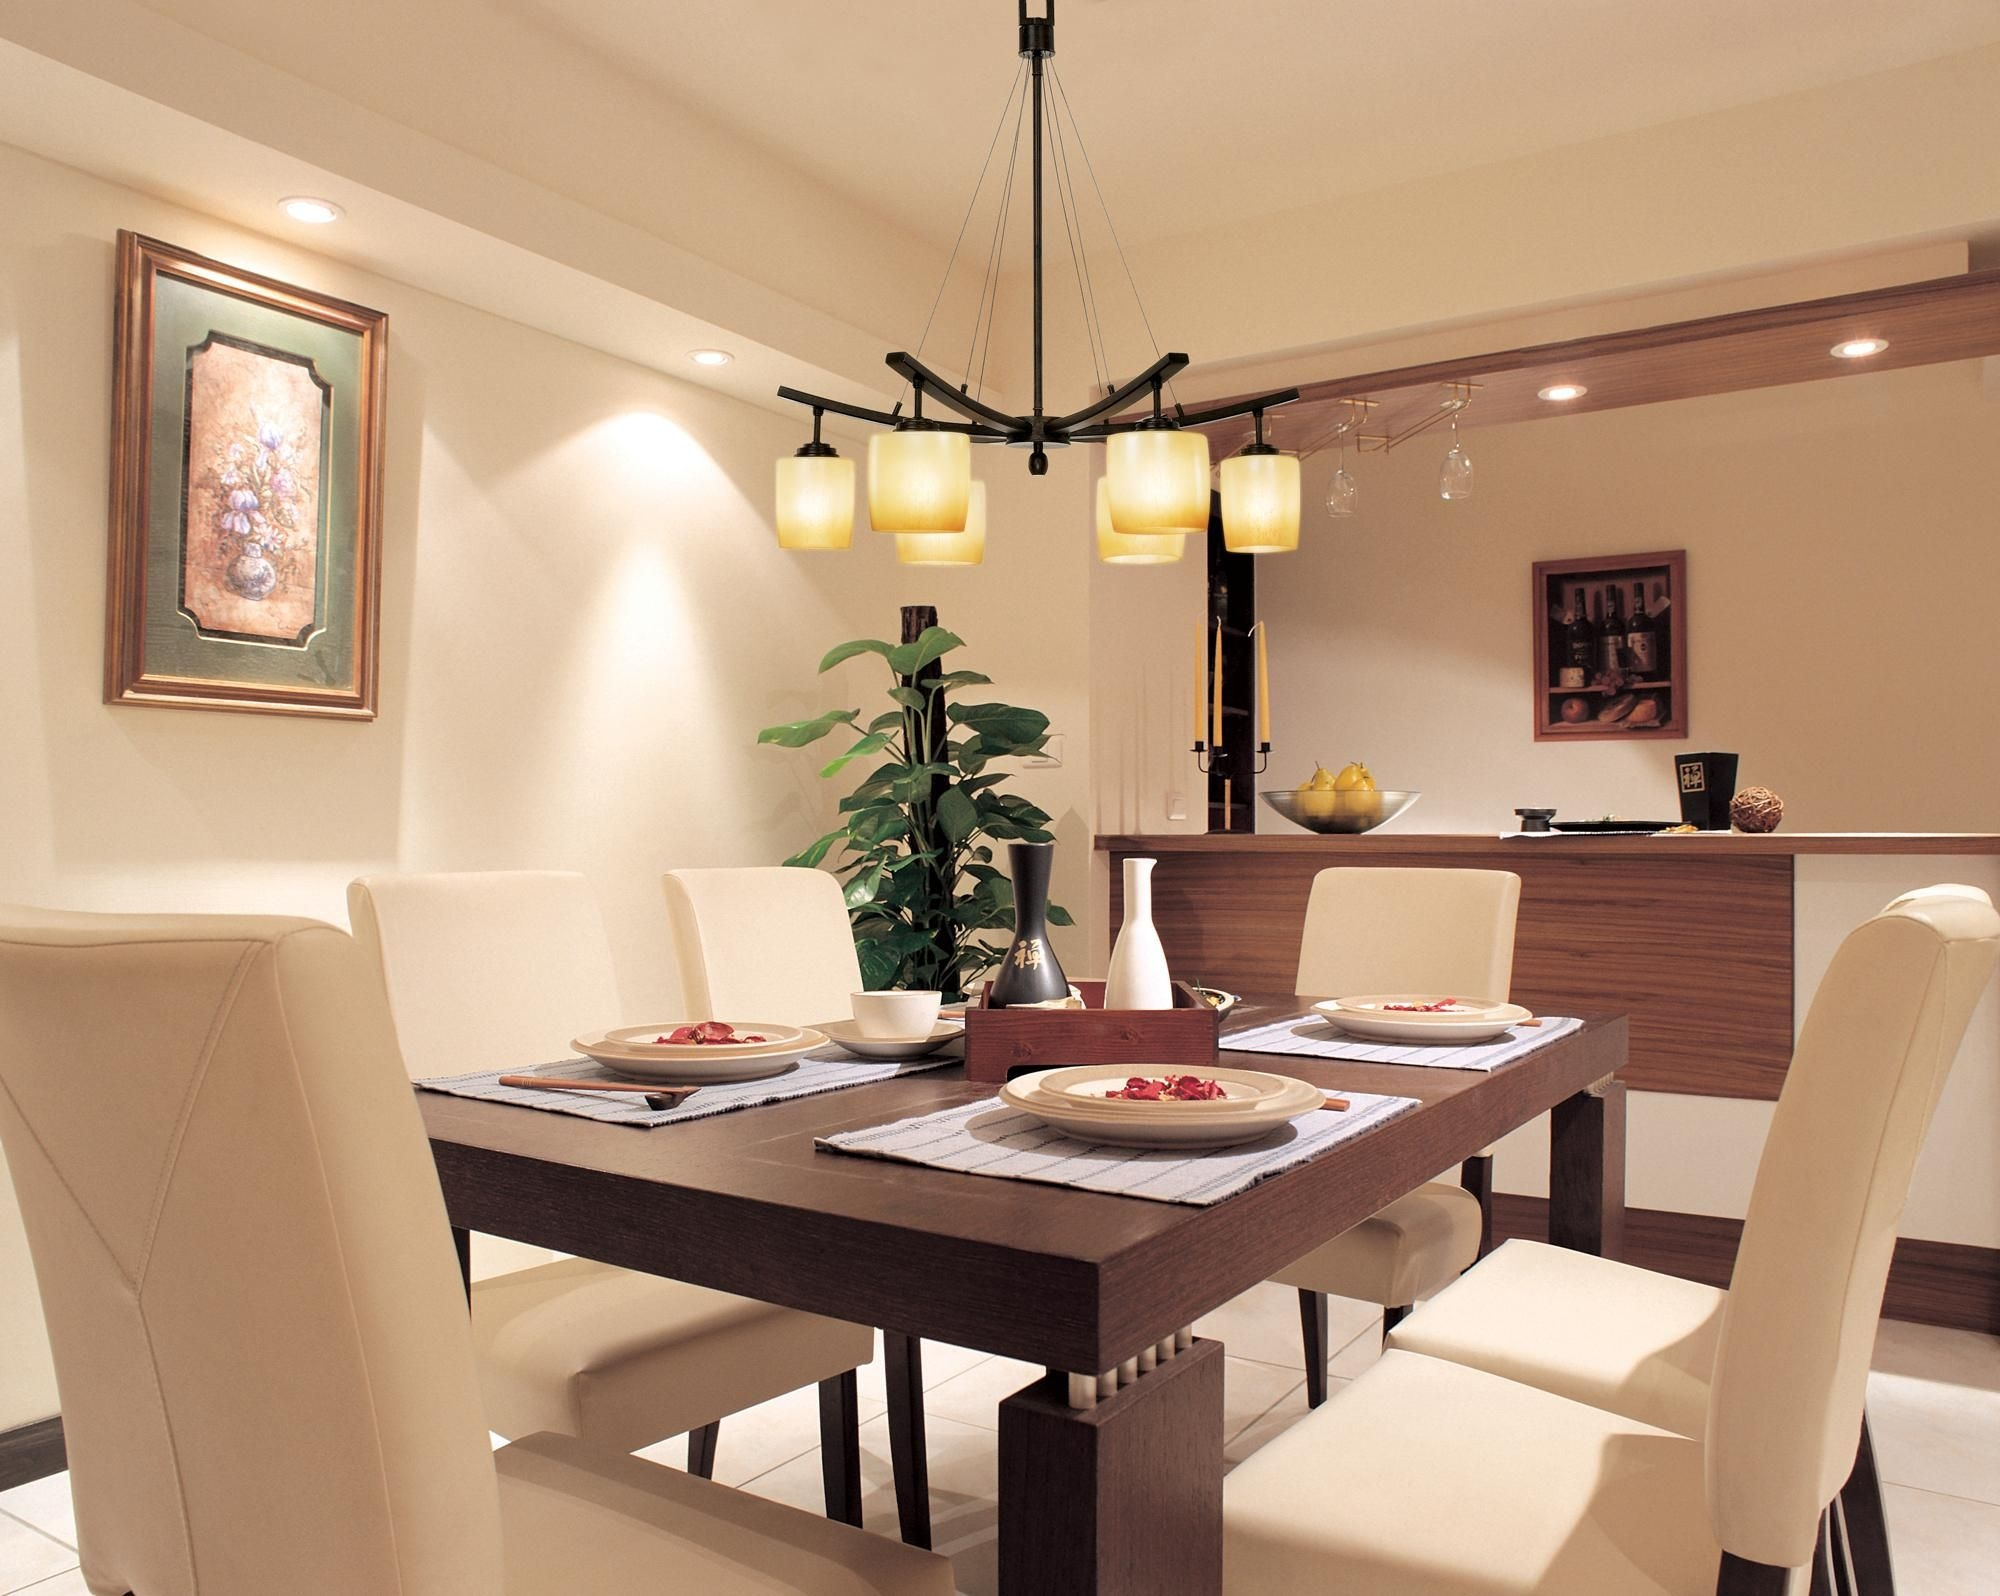 light fixtures for kitchen dining area design ideas 2017 2018